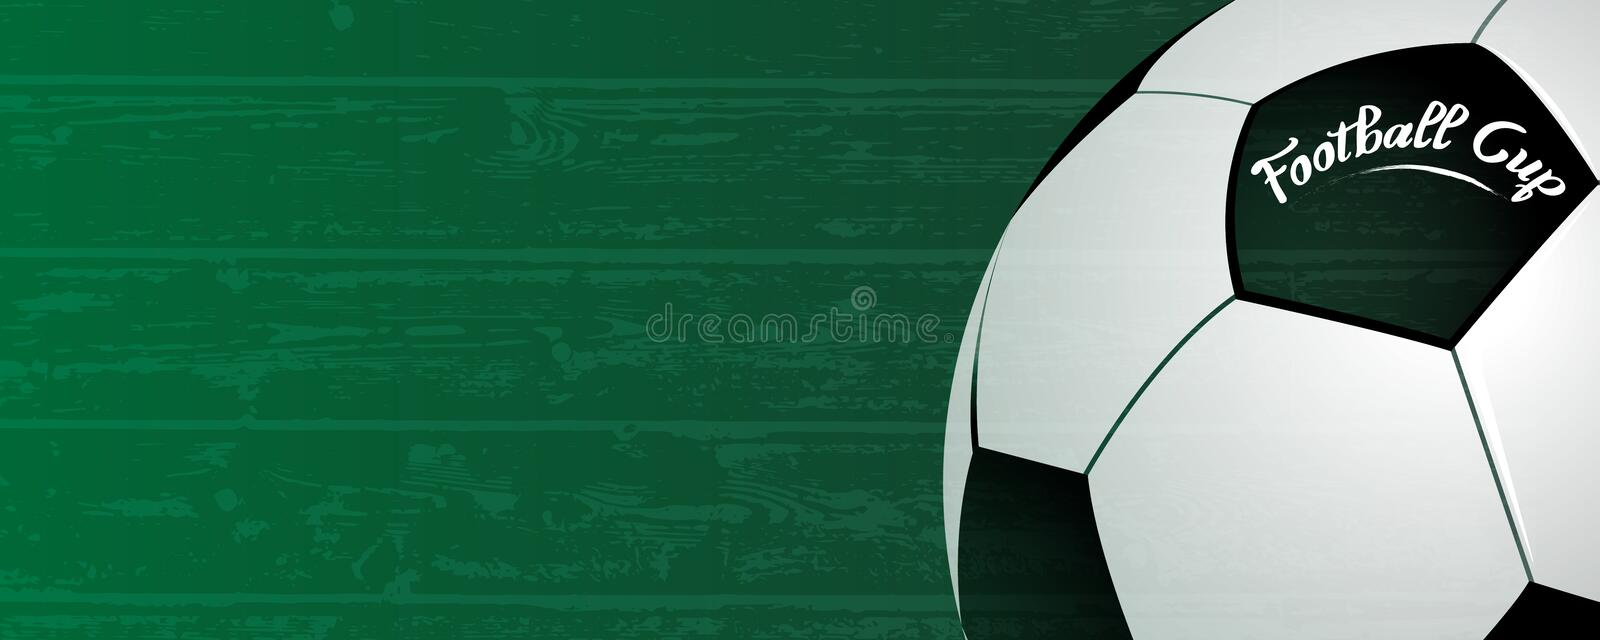 Football cup background. Classic ball on grunge green field background. Sport and Soccer national competition event concept. stock illustration